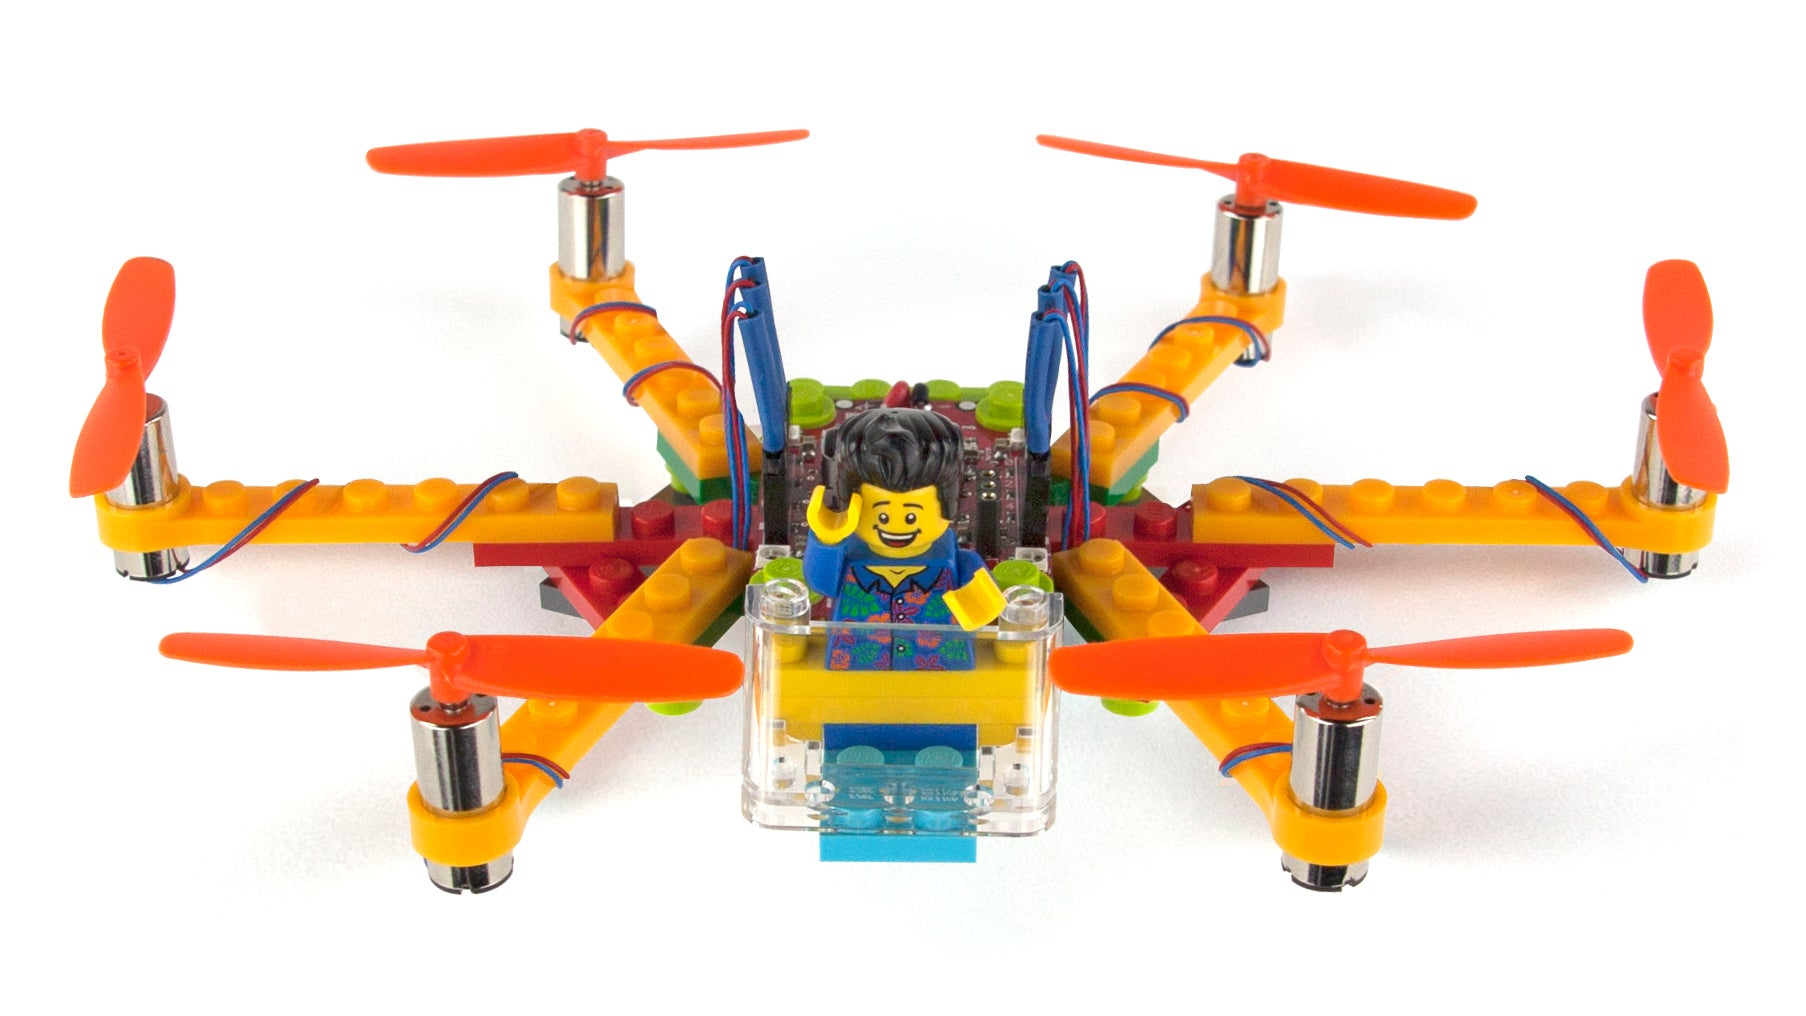 These Simple Kits Let You Build Flying Drones From LEGO